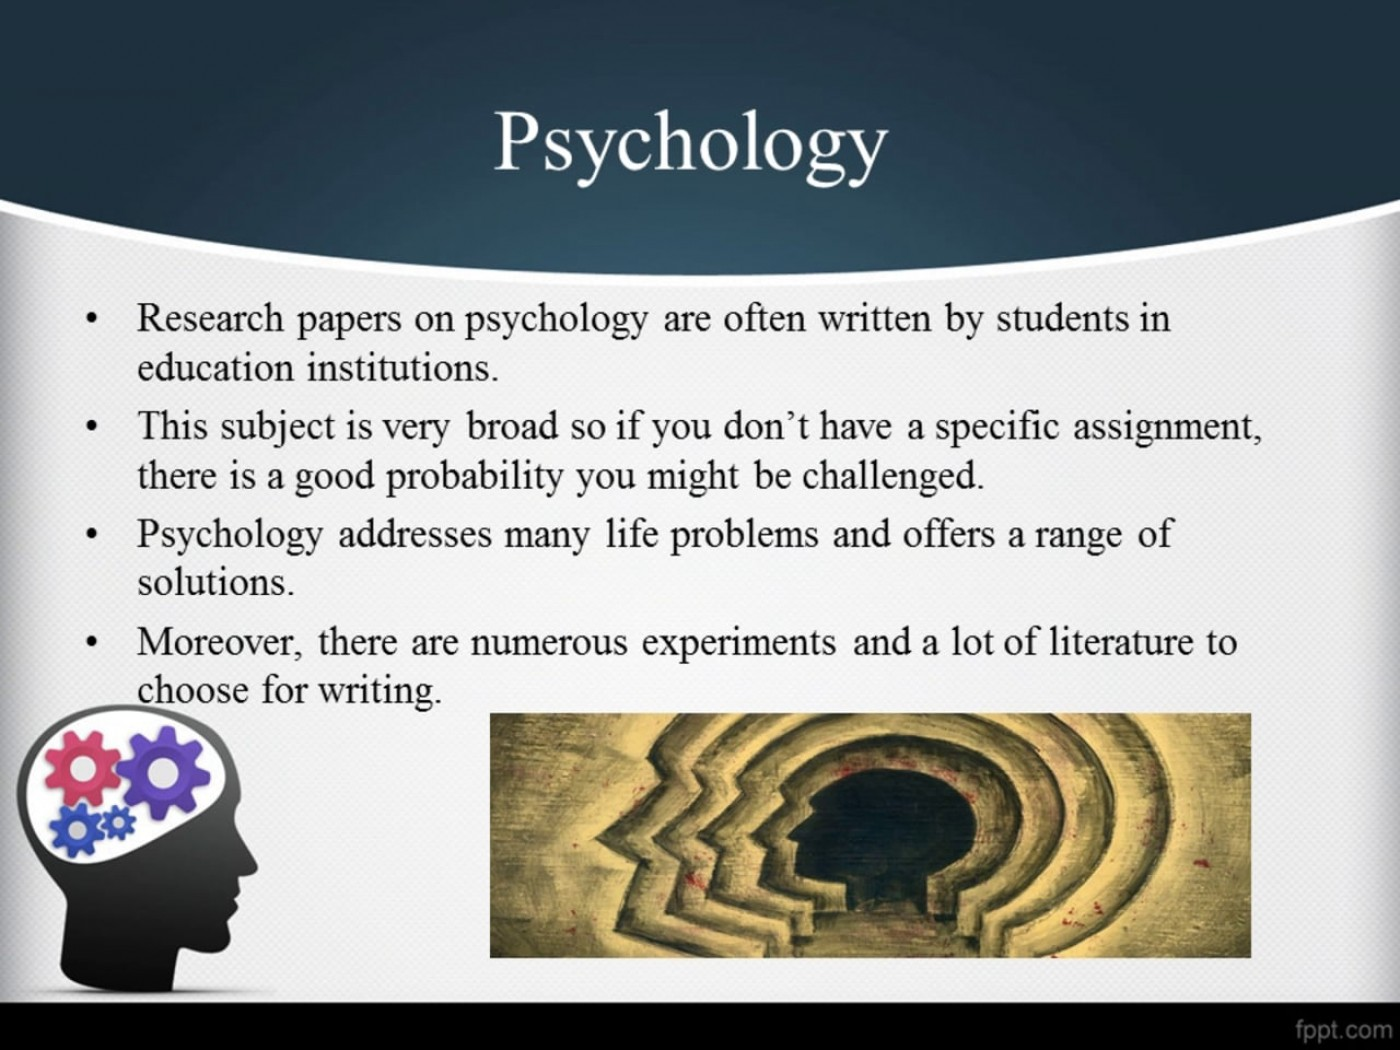 007 Research Paper 534384154 1280x960 Psychology Topics For High School Frightening Students 1400